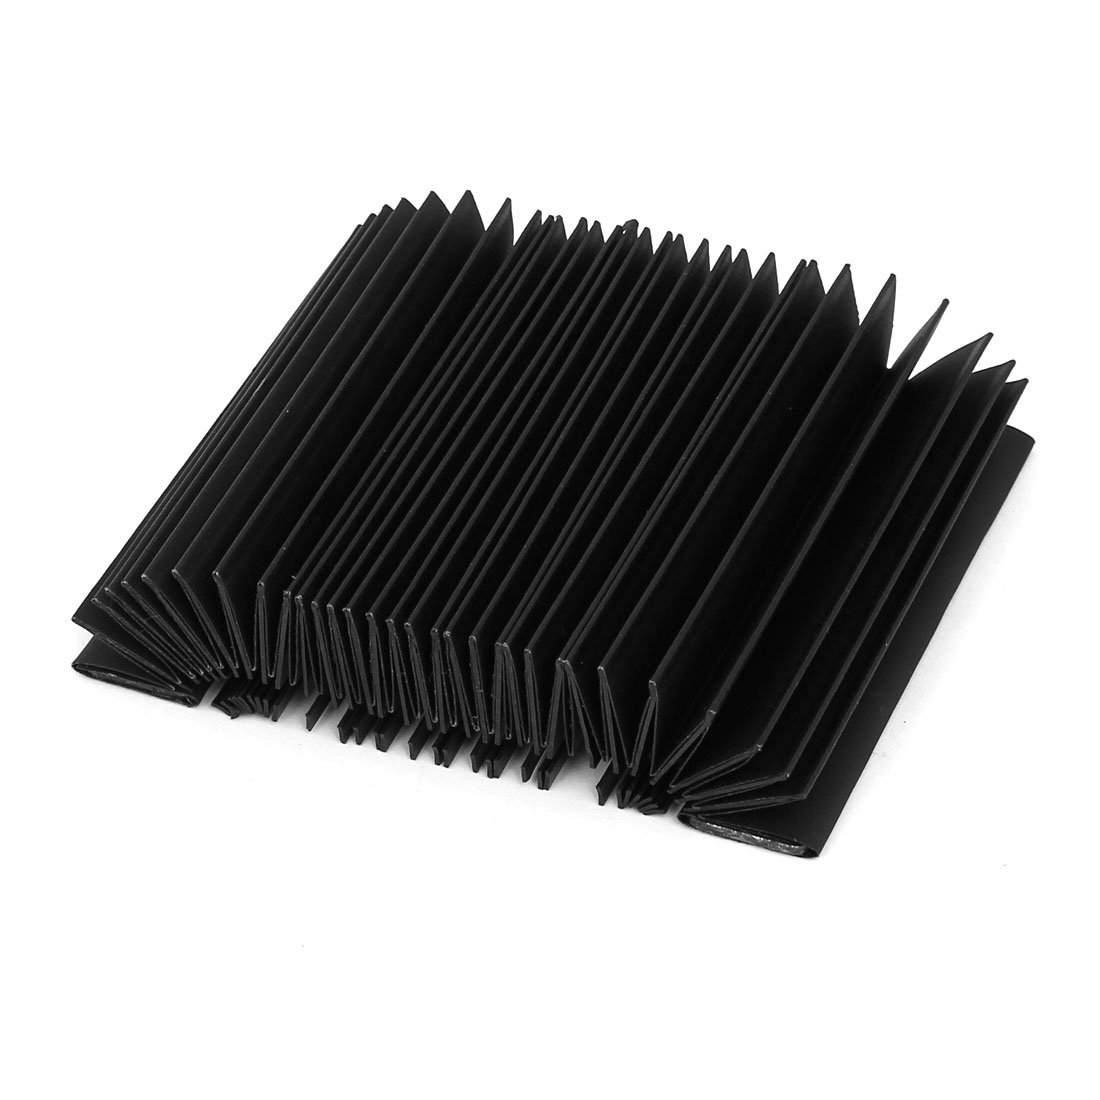 uxcell 100mmx56mmx30mm Rectangle Shape Accordion Dust Cover Black for Milling Machine